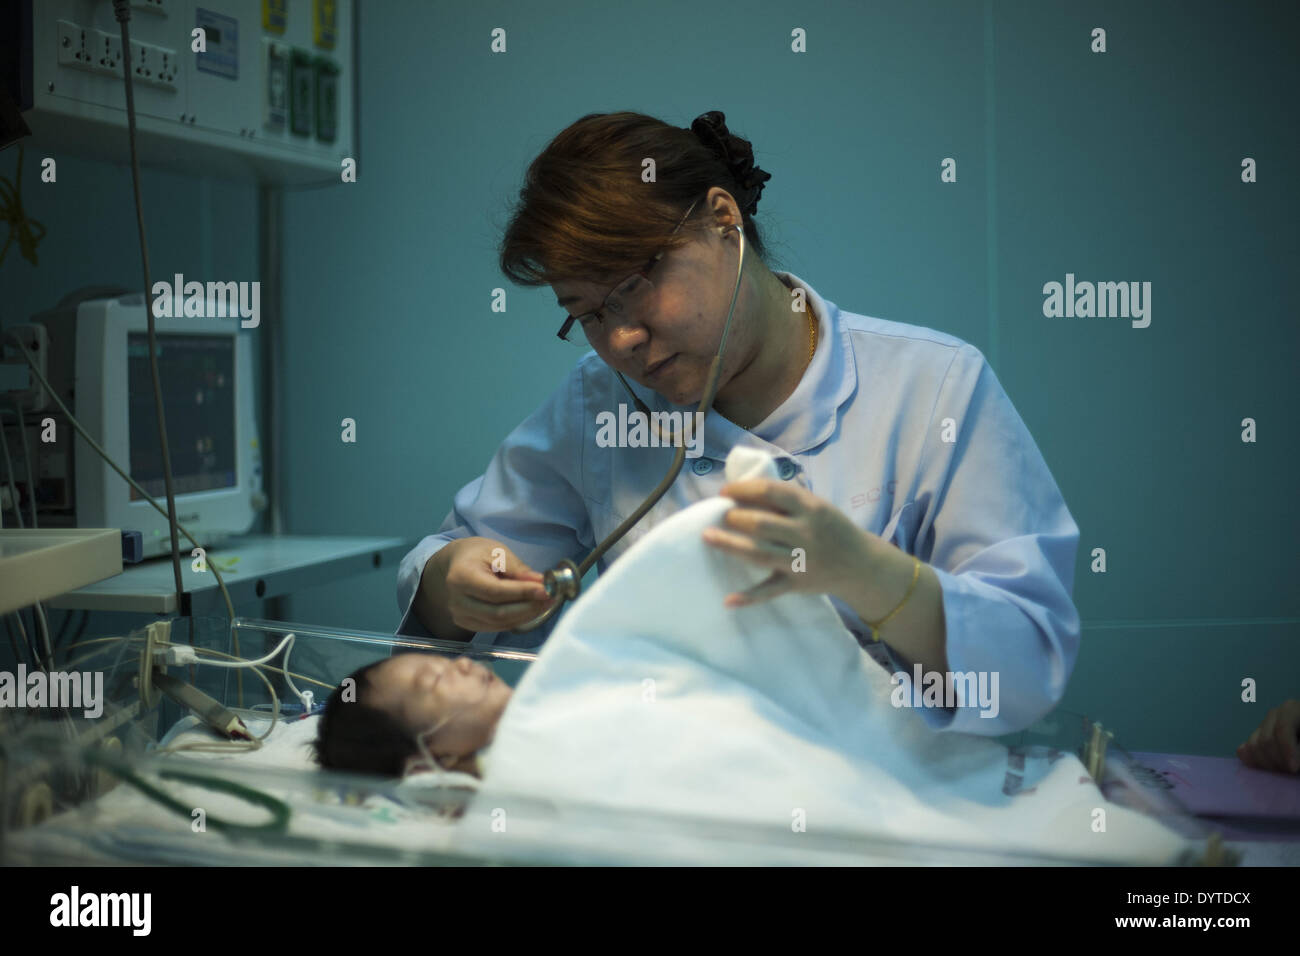 Nurse take care of kids after heart operation at Shanghai ChildrenâÄ™s Medical Center - Stock Image